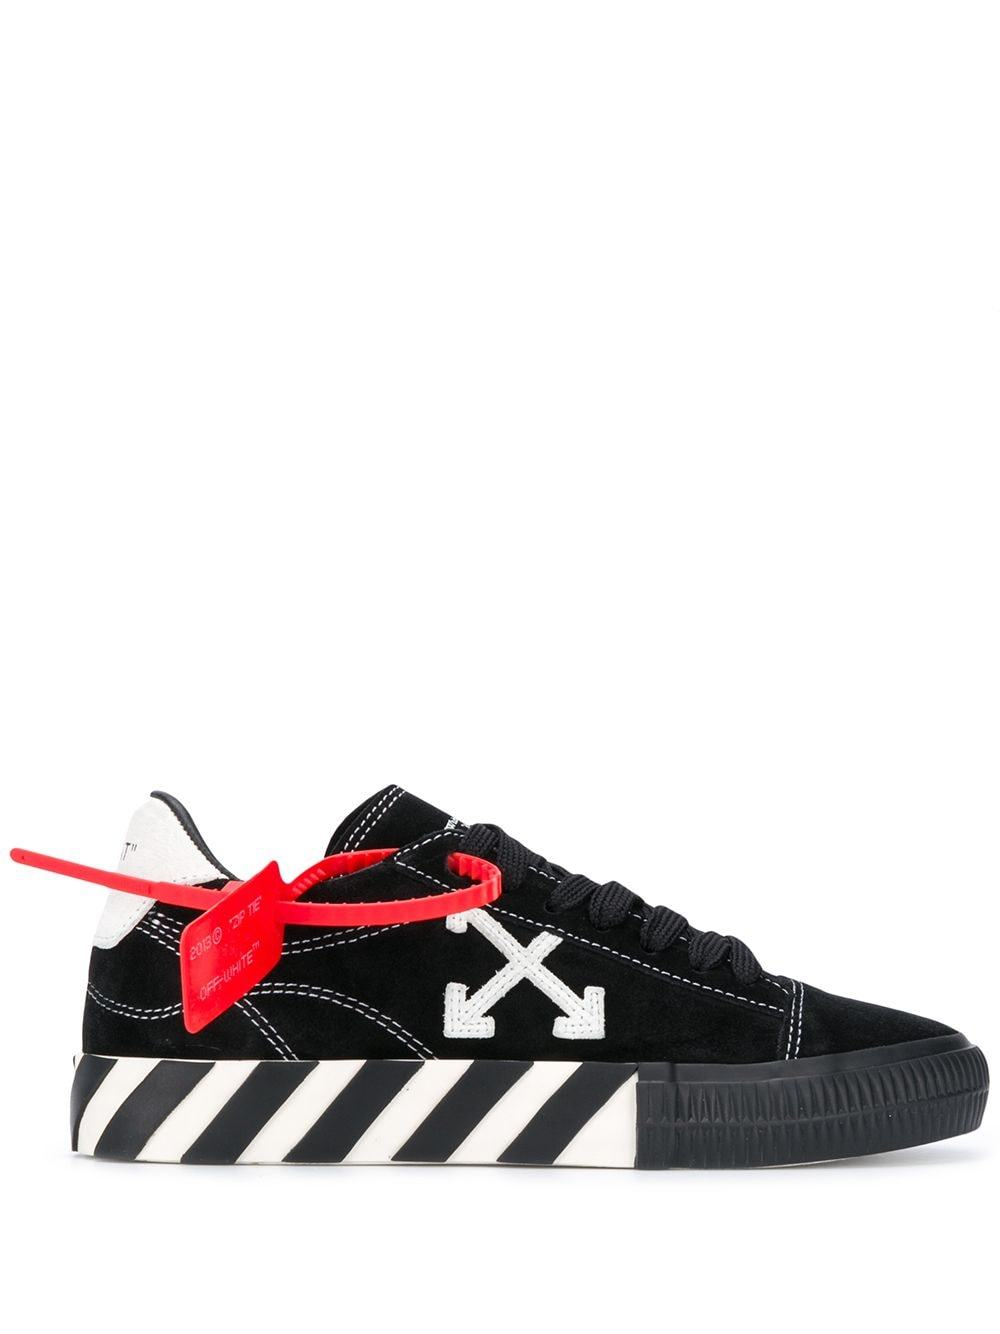 OFF-WHITE Contrast Stitched Low Vulcanized Sneakers Black